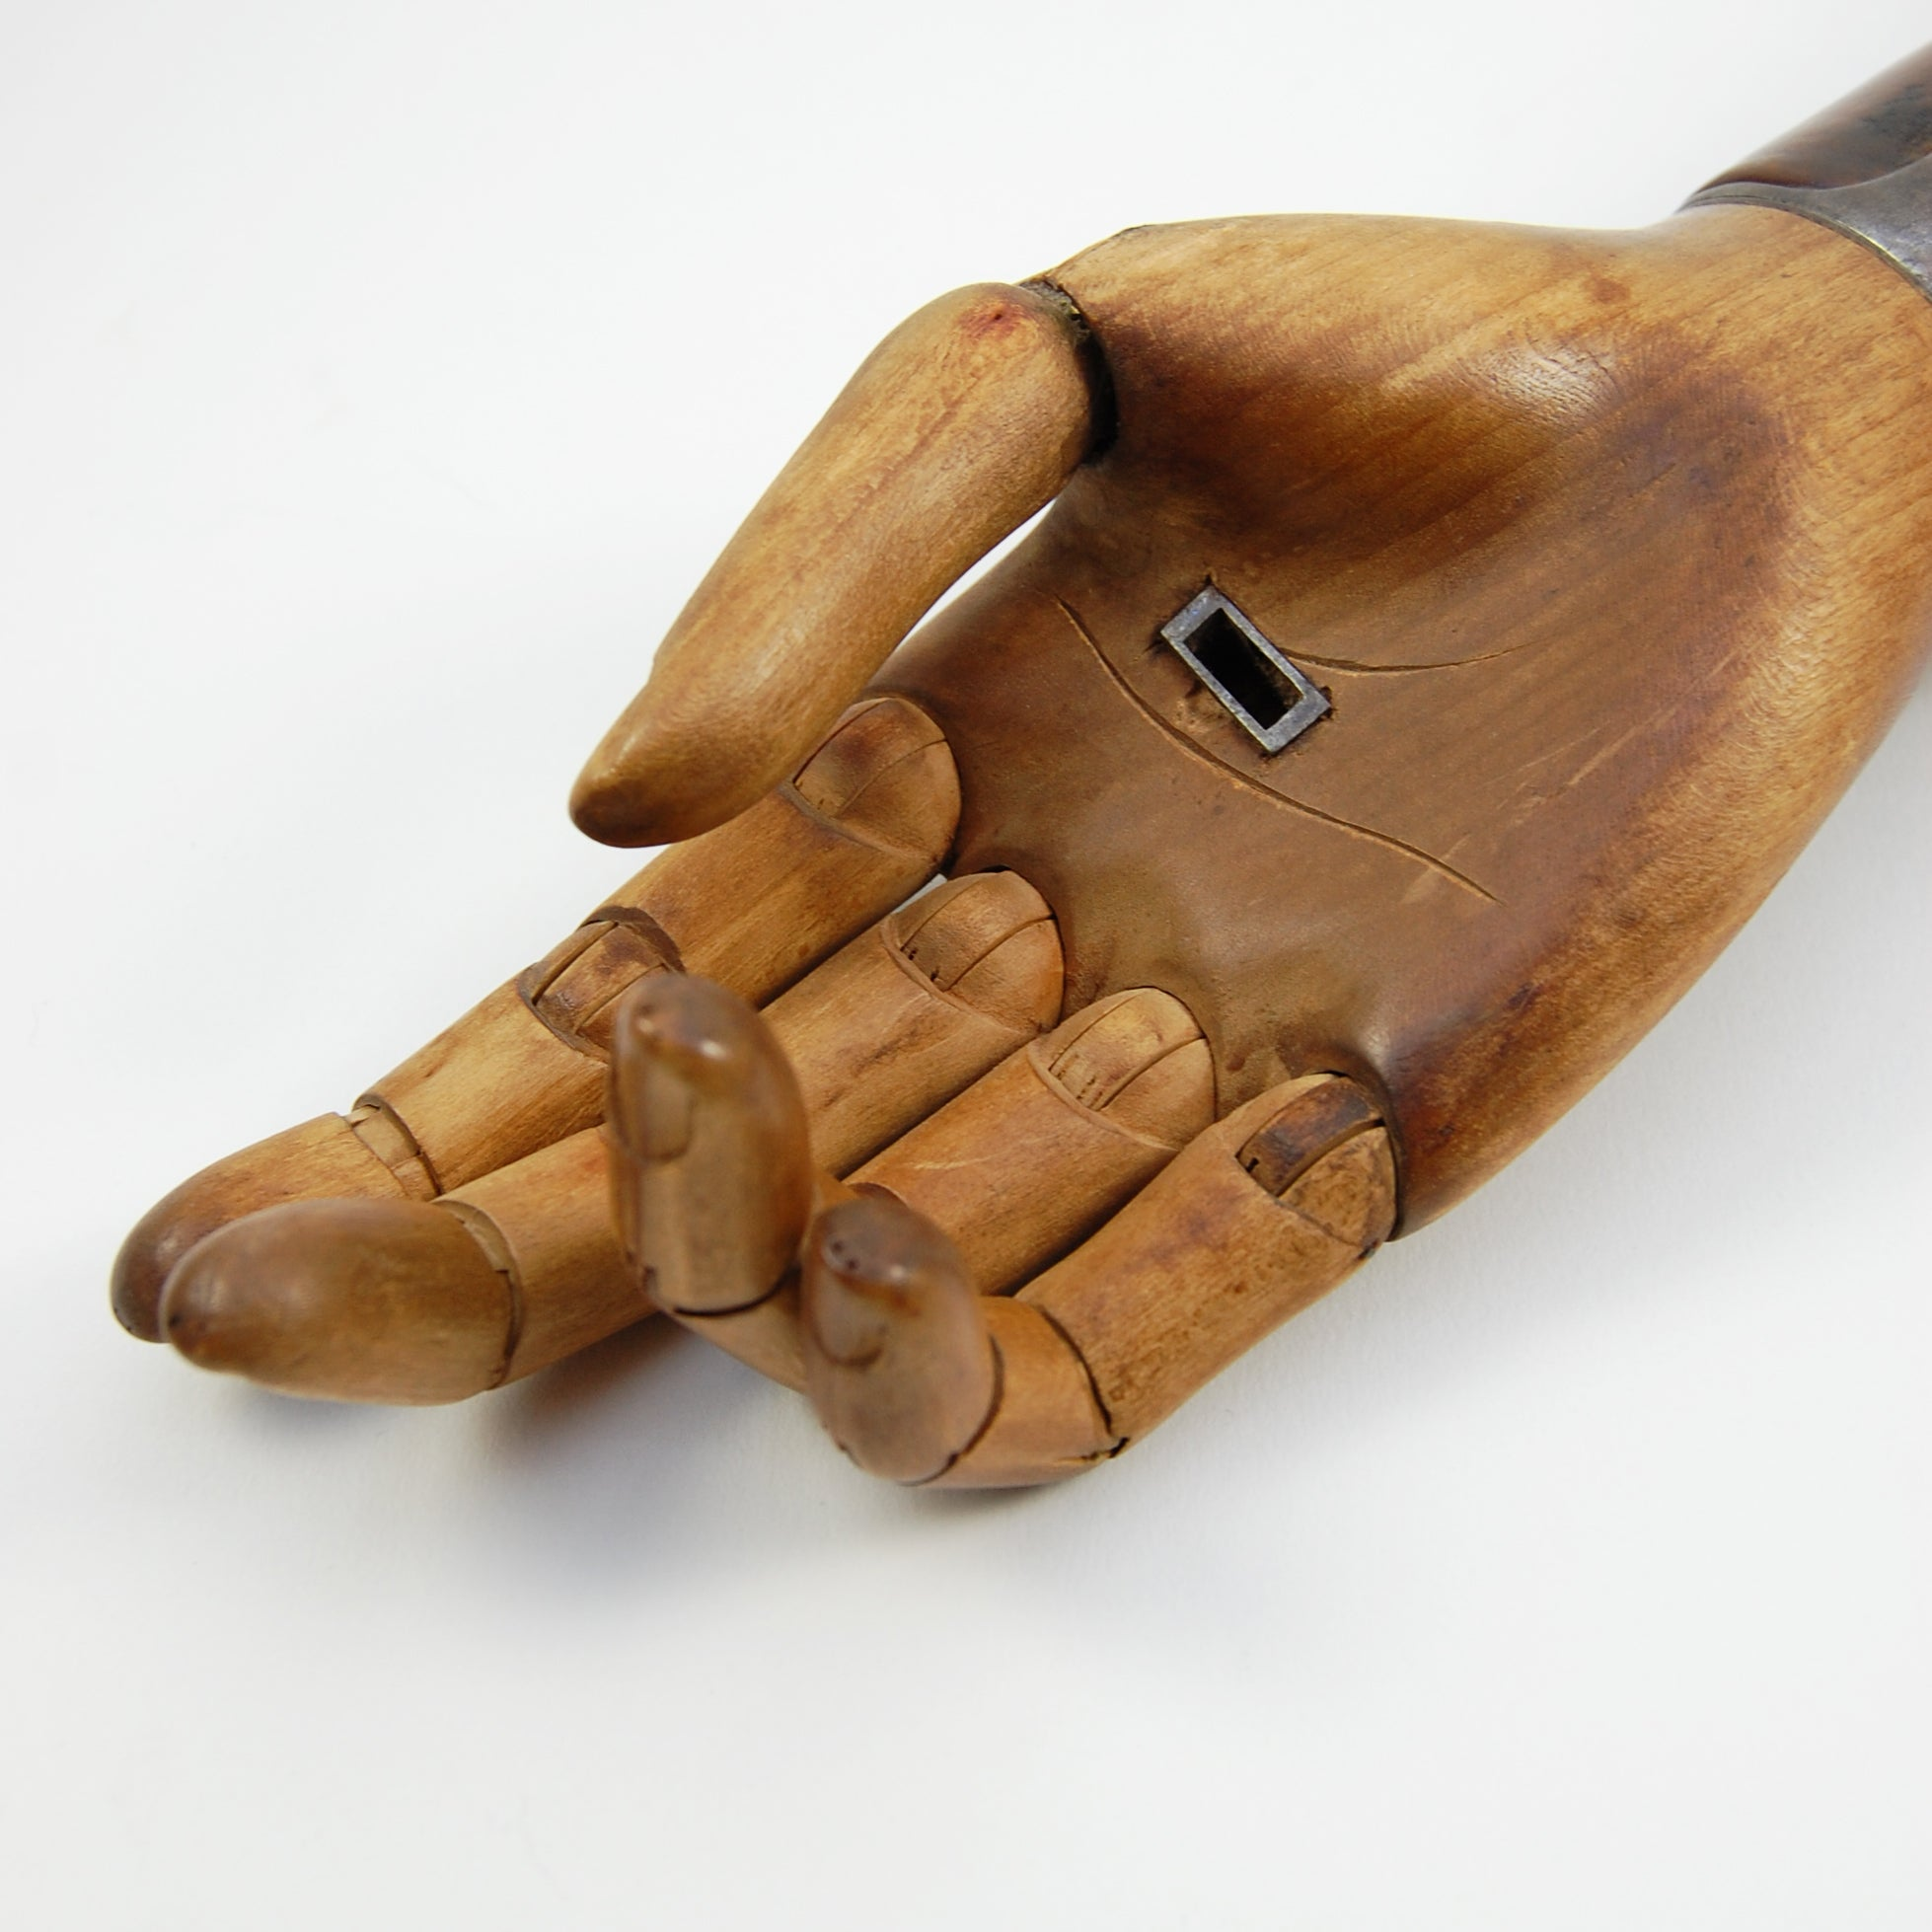 A Rare Victorian Prosthetic Hand by J. Gillingham & Son